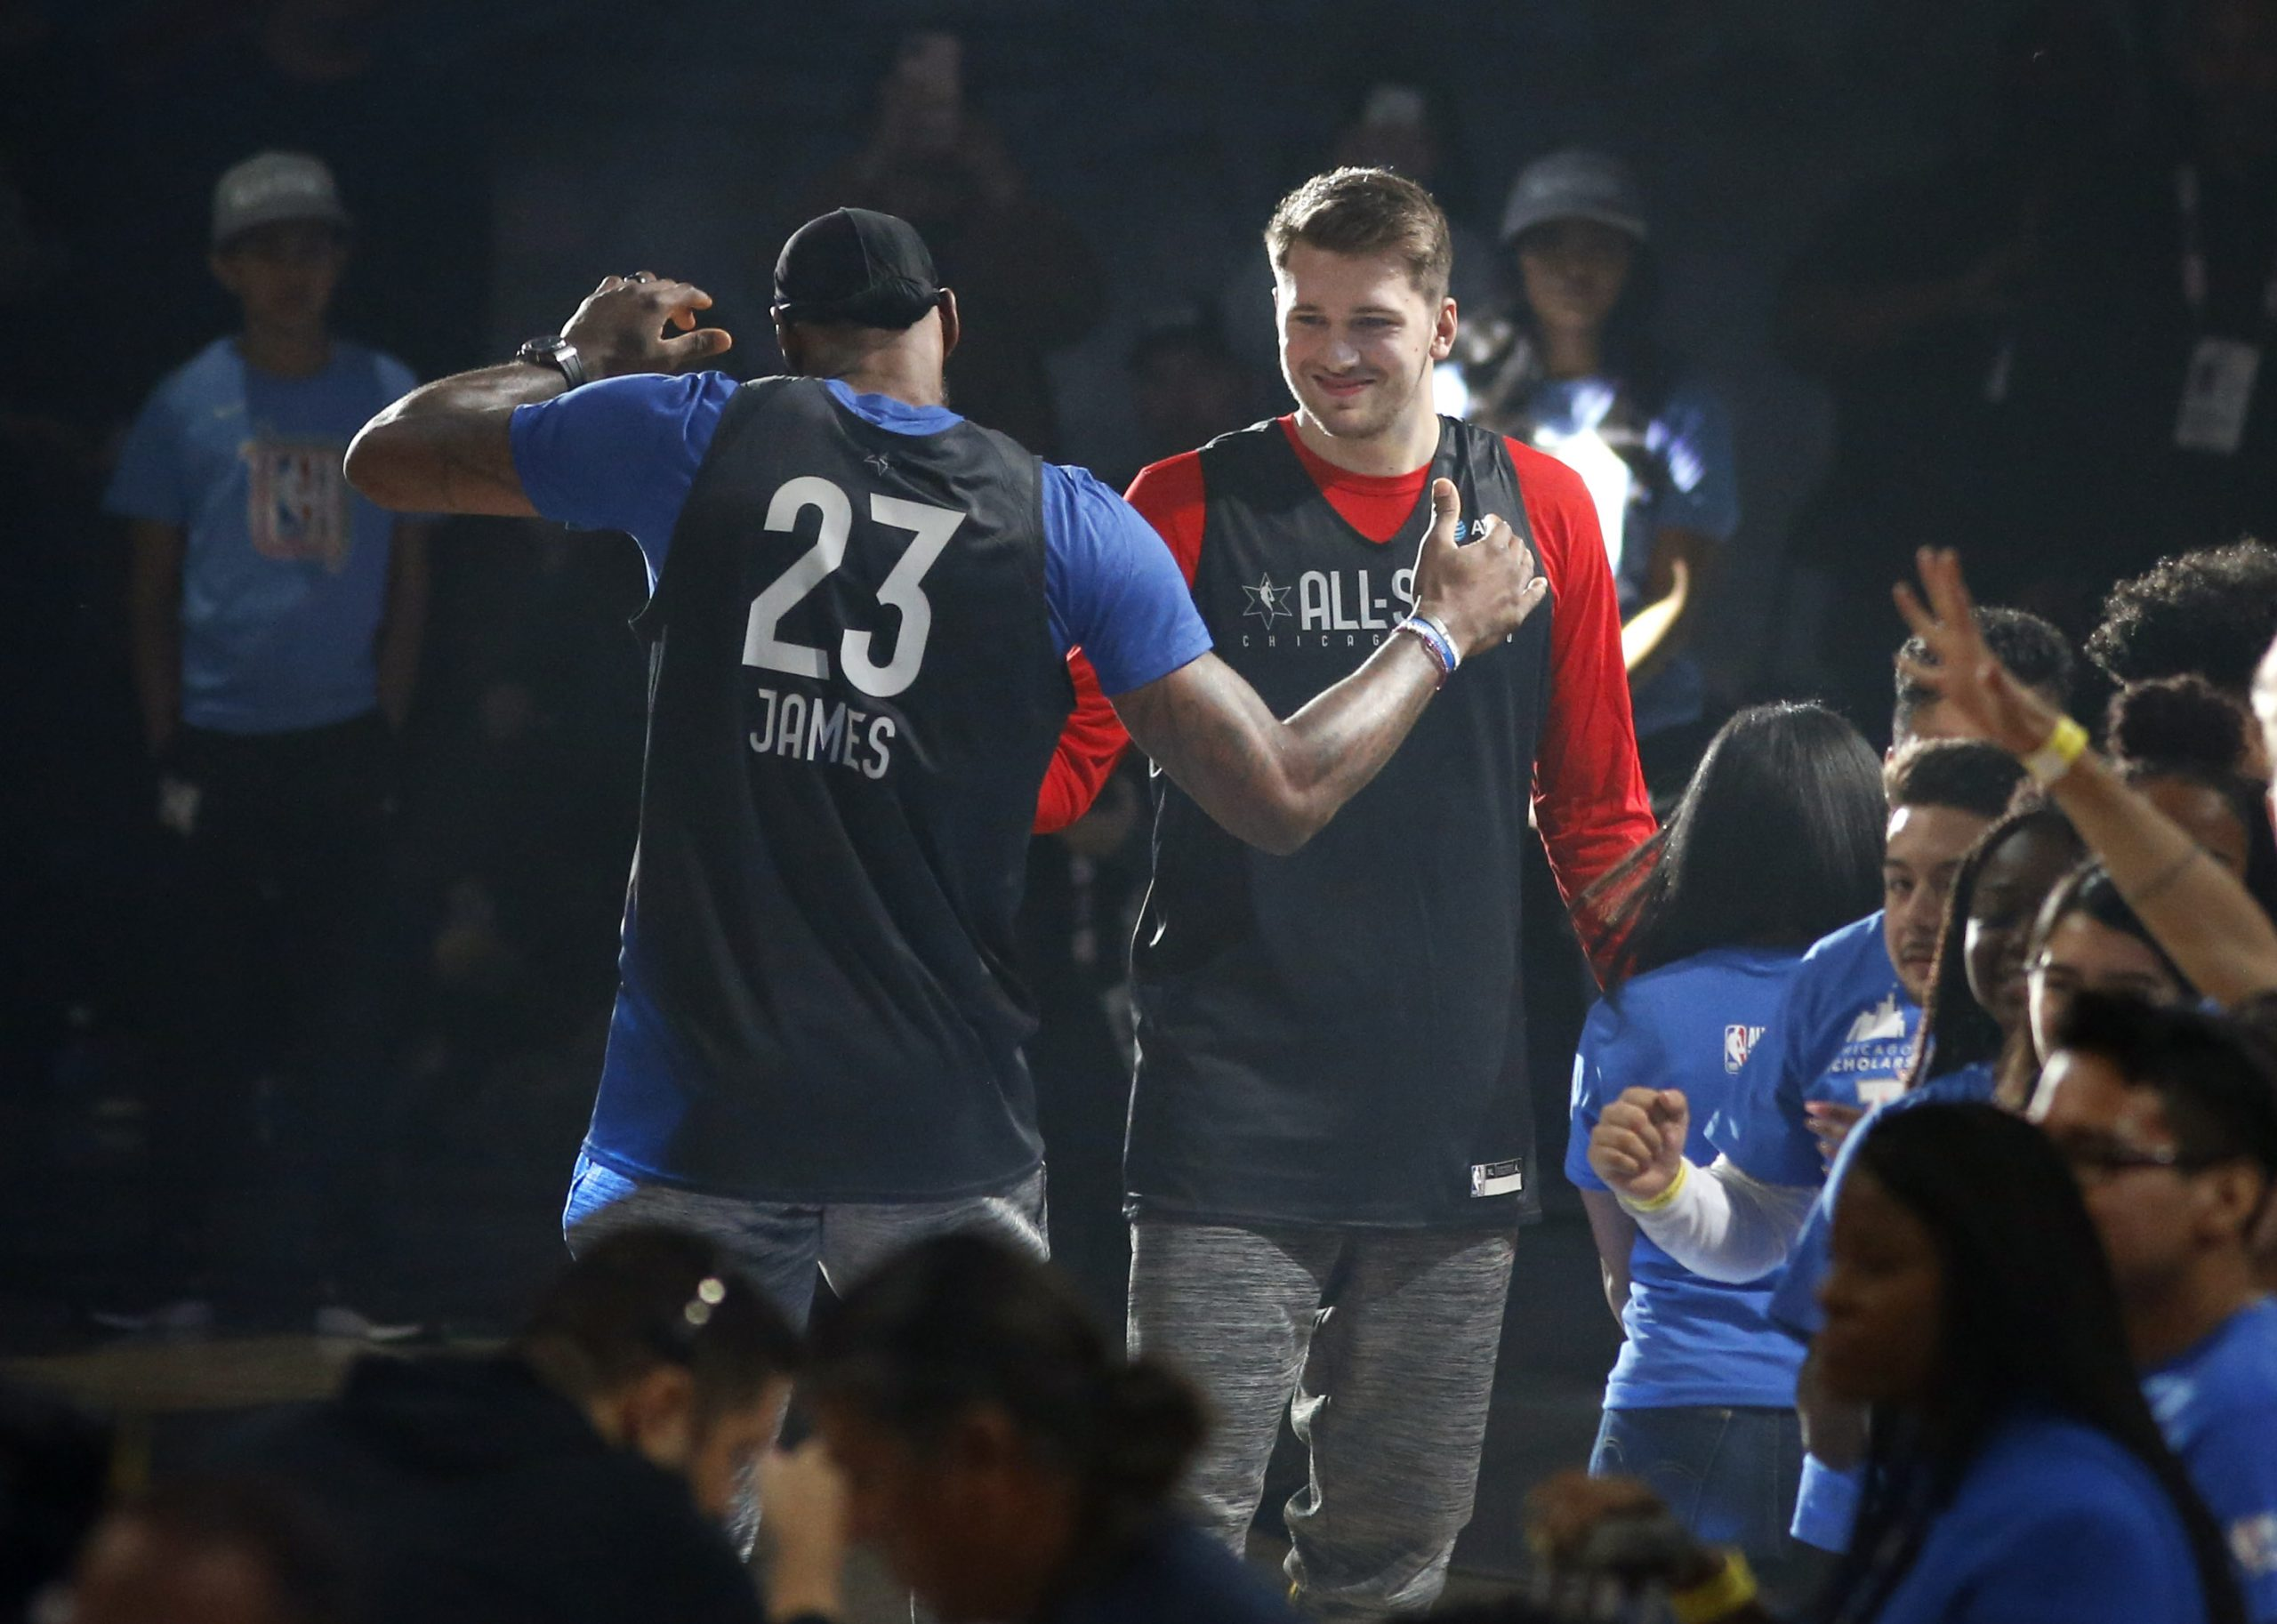 Team LeBron's Los Angeles Lakers LeBron James (23) and Dallas Mavericks forward Luka Doncic (77) meet after player introductions during practice for the NBA All-Star 2020 game at Wintrust Arena in Chicago on Saturday, February 15, 2020. (Vernon Bryant/The Dallas Morning News)